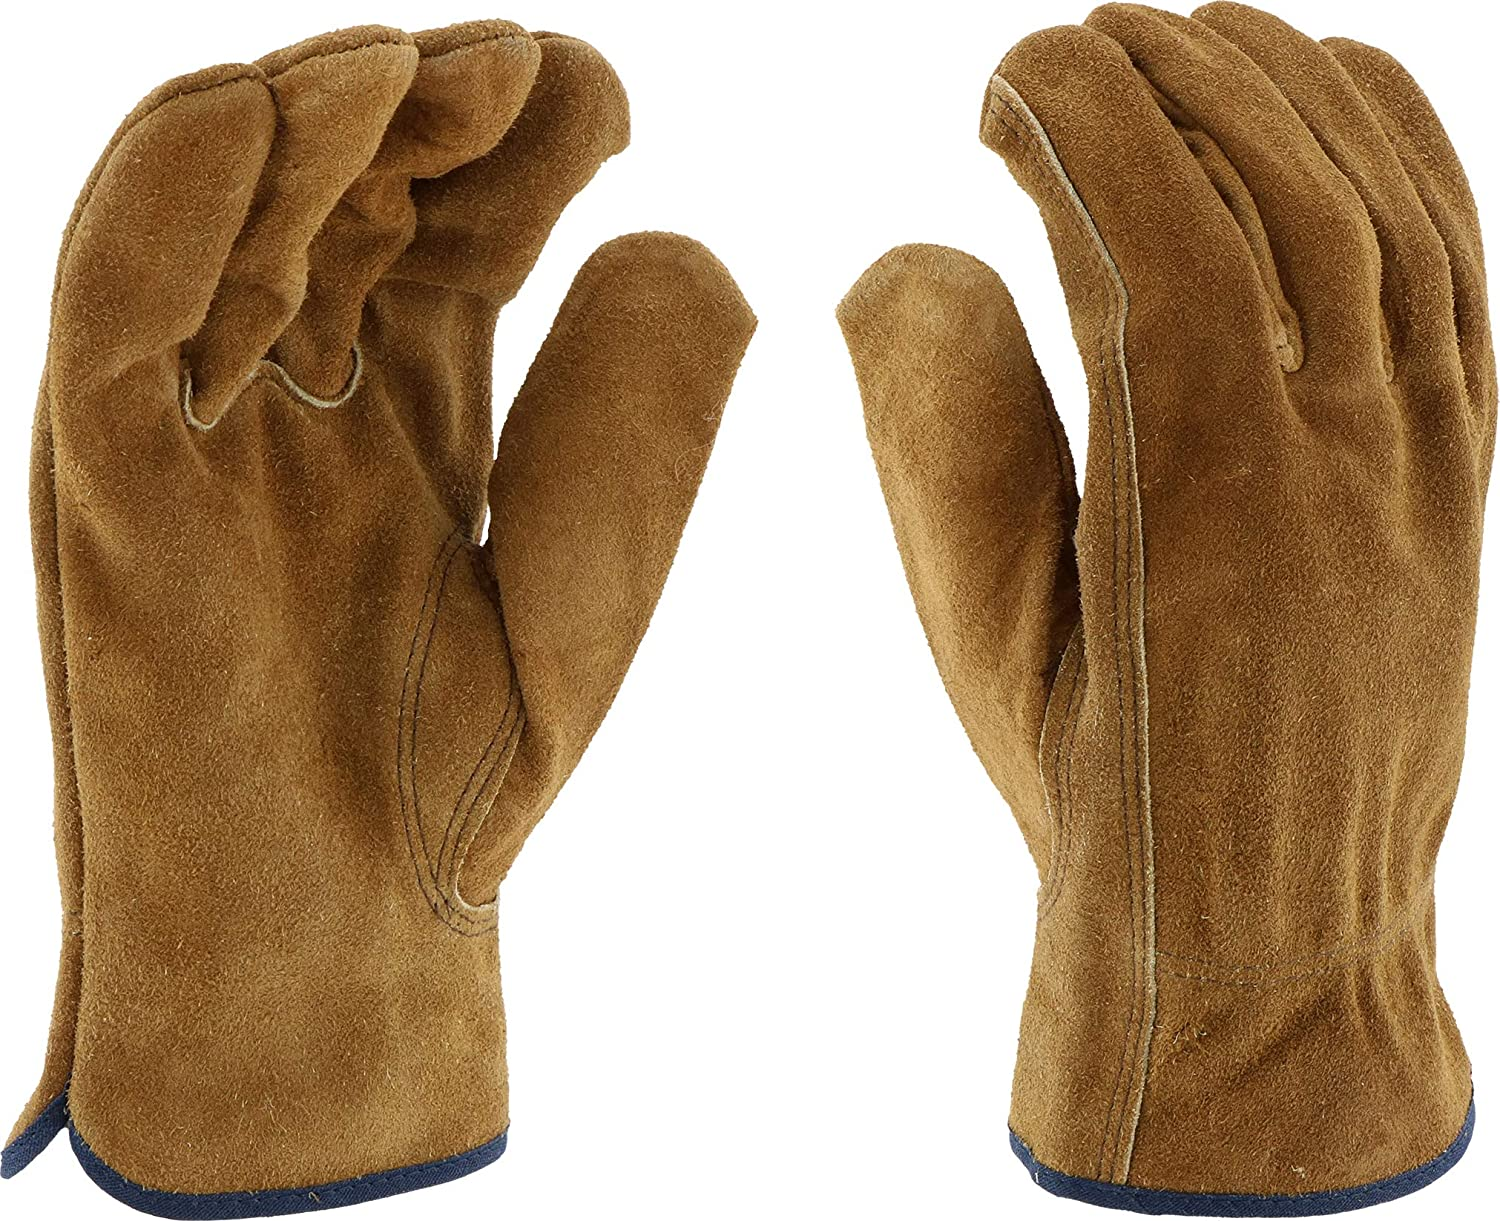 West Chester 81456 Split Cowhide Leather Unlined Driver Glove, Work, Shirred Elastic Wrist Cuff, Medium, Brown (Pack of 1 Pair) Westchester 81456-M